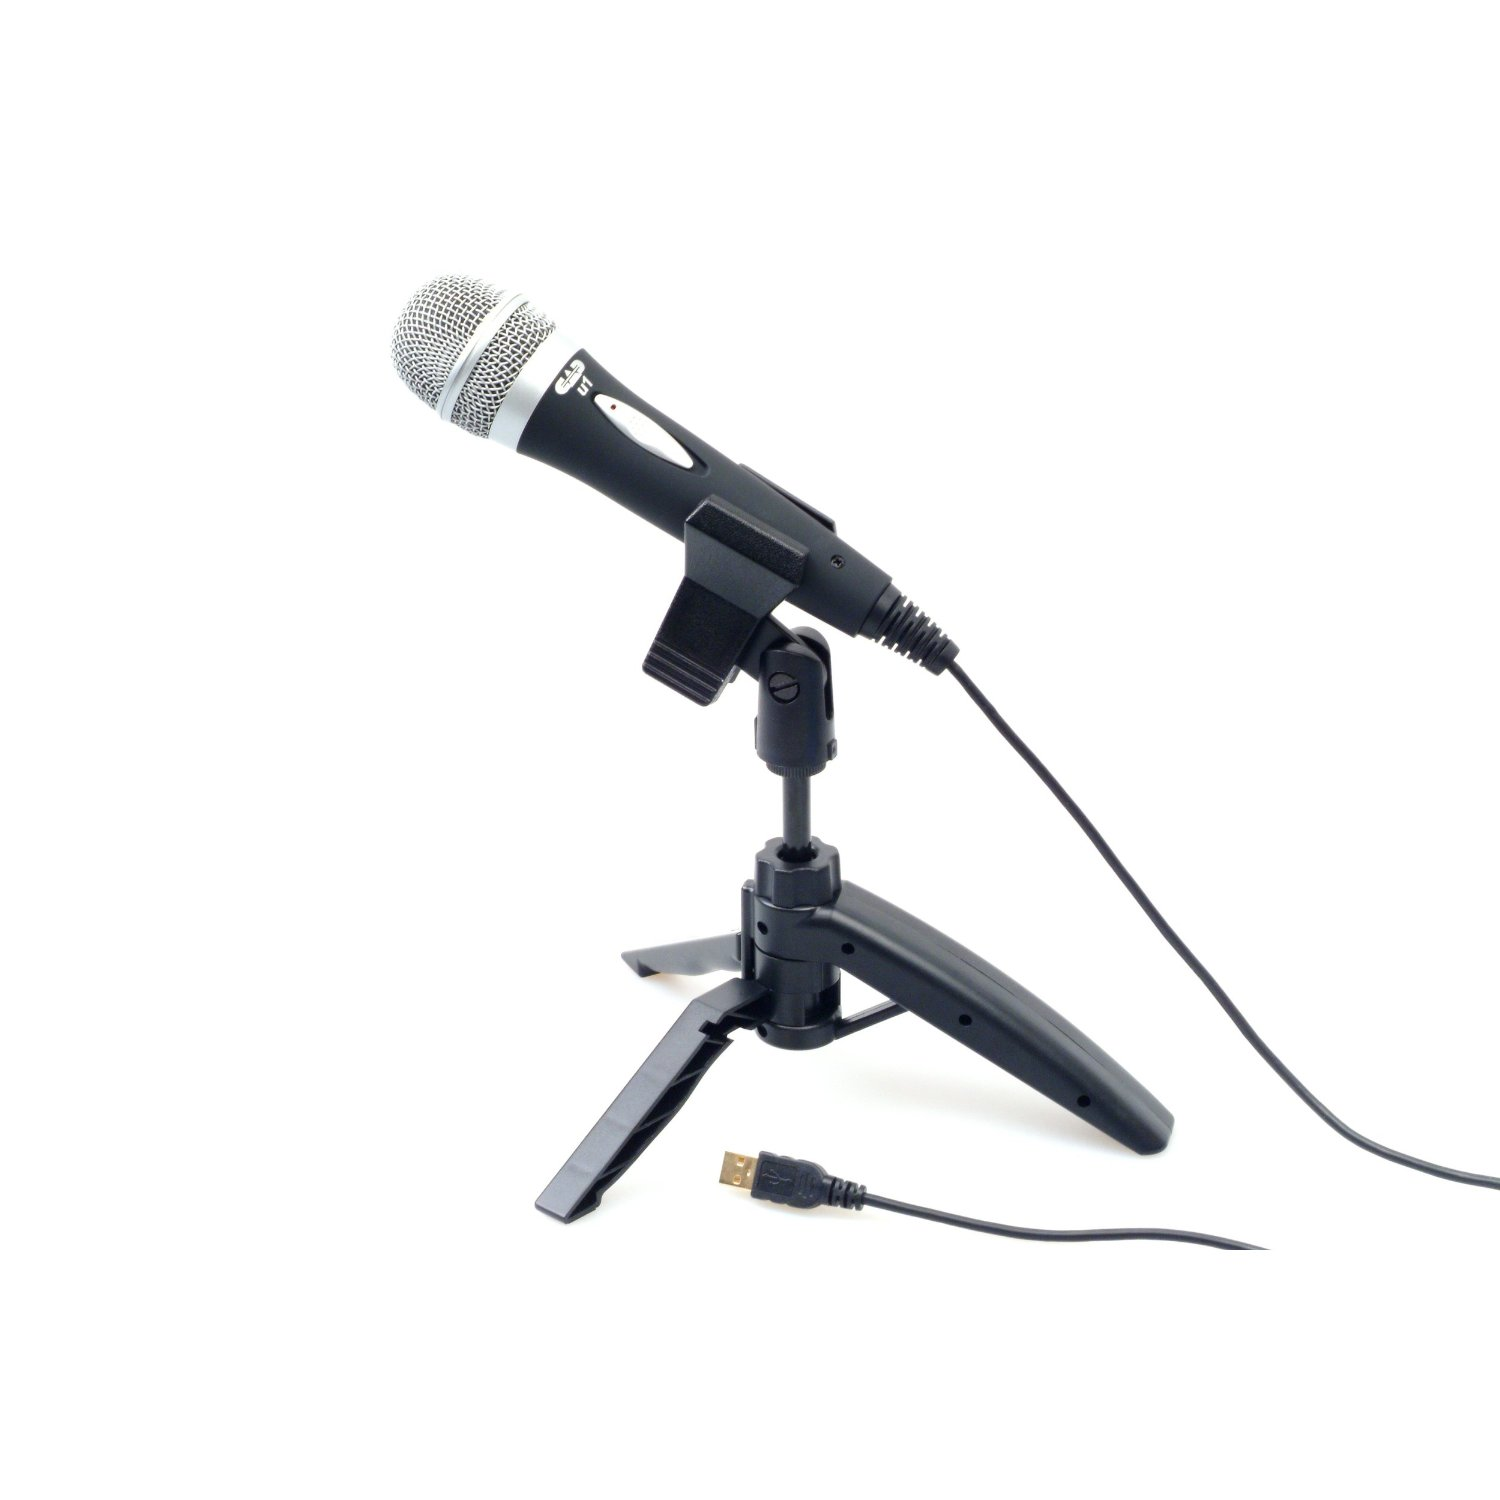 CAD-U1 Dynamic Recording USB Microphone